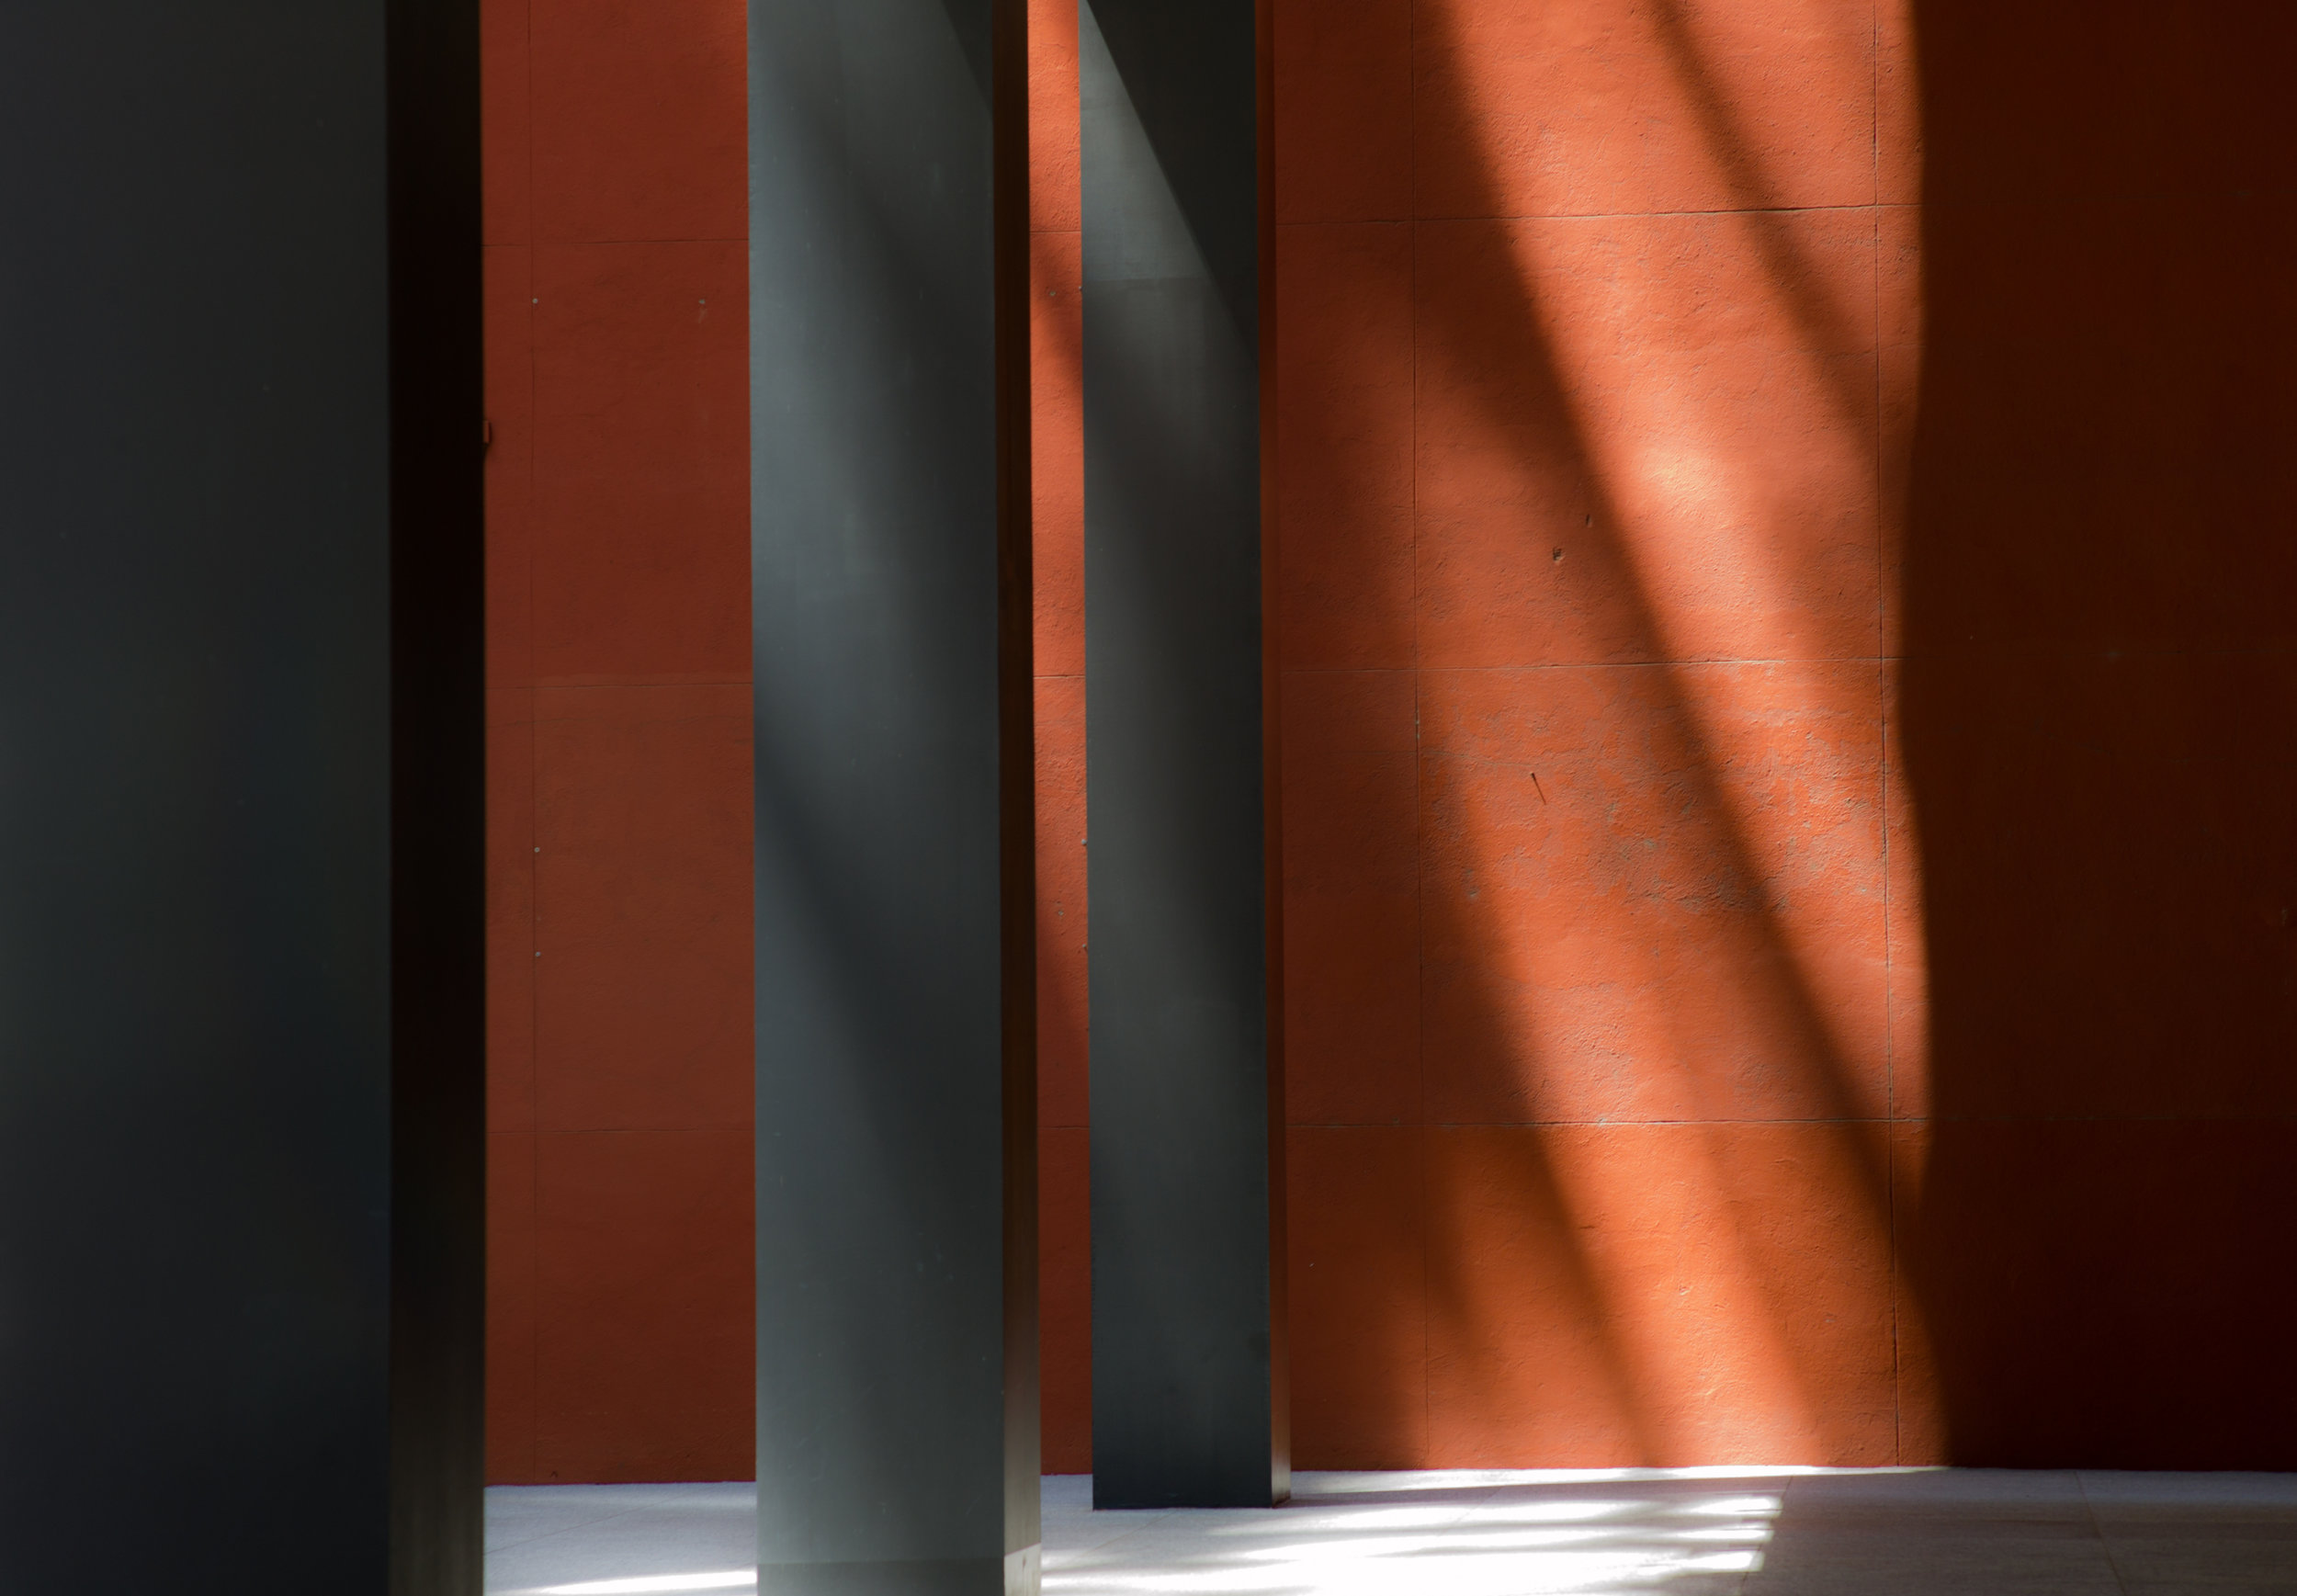 Orange Wall with Columns, Shadows